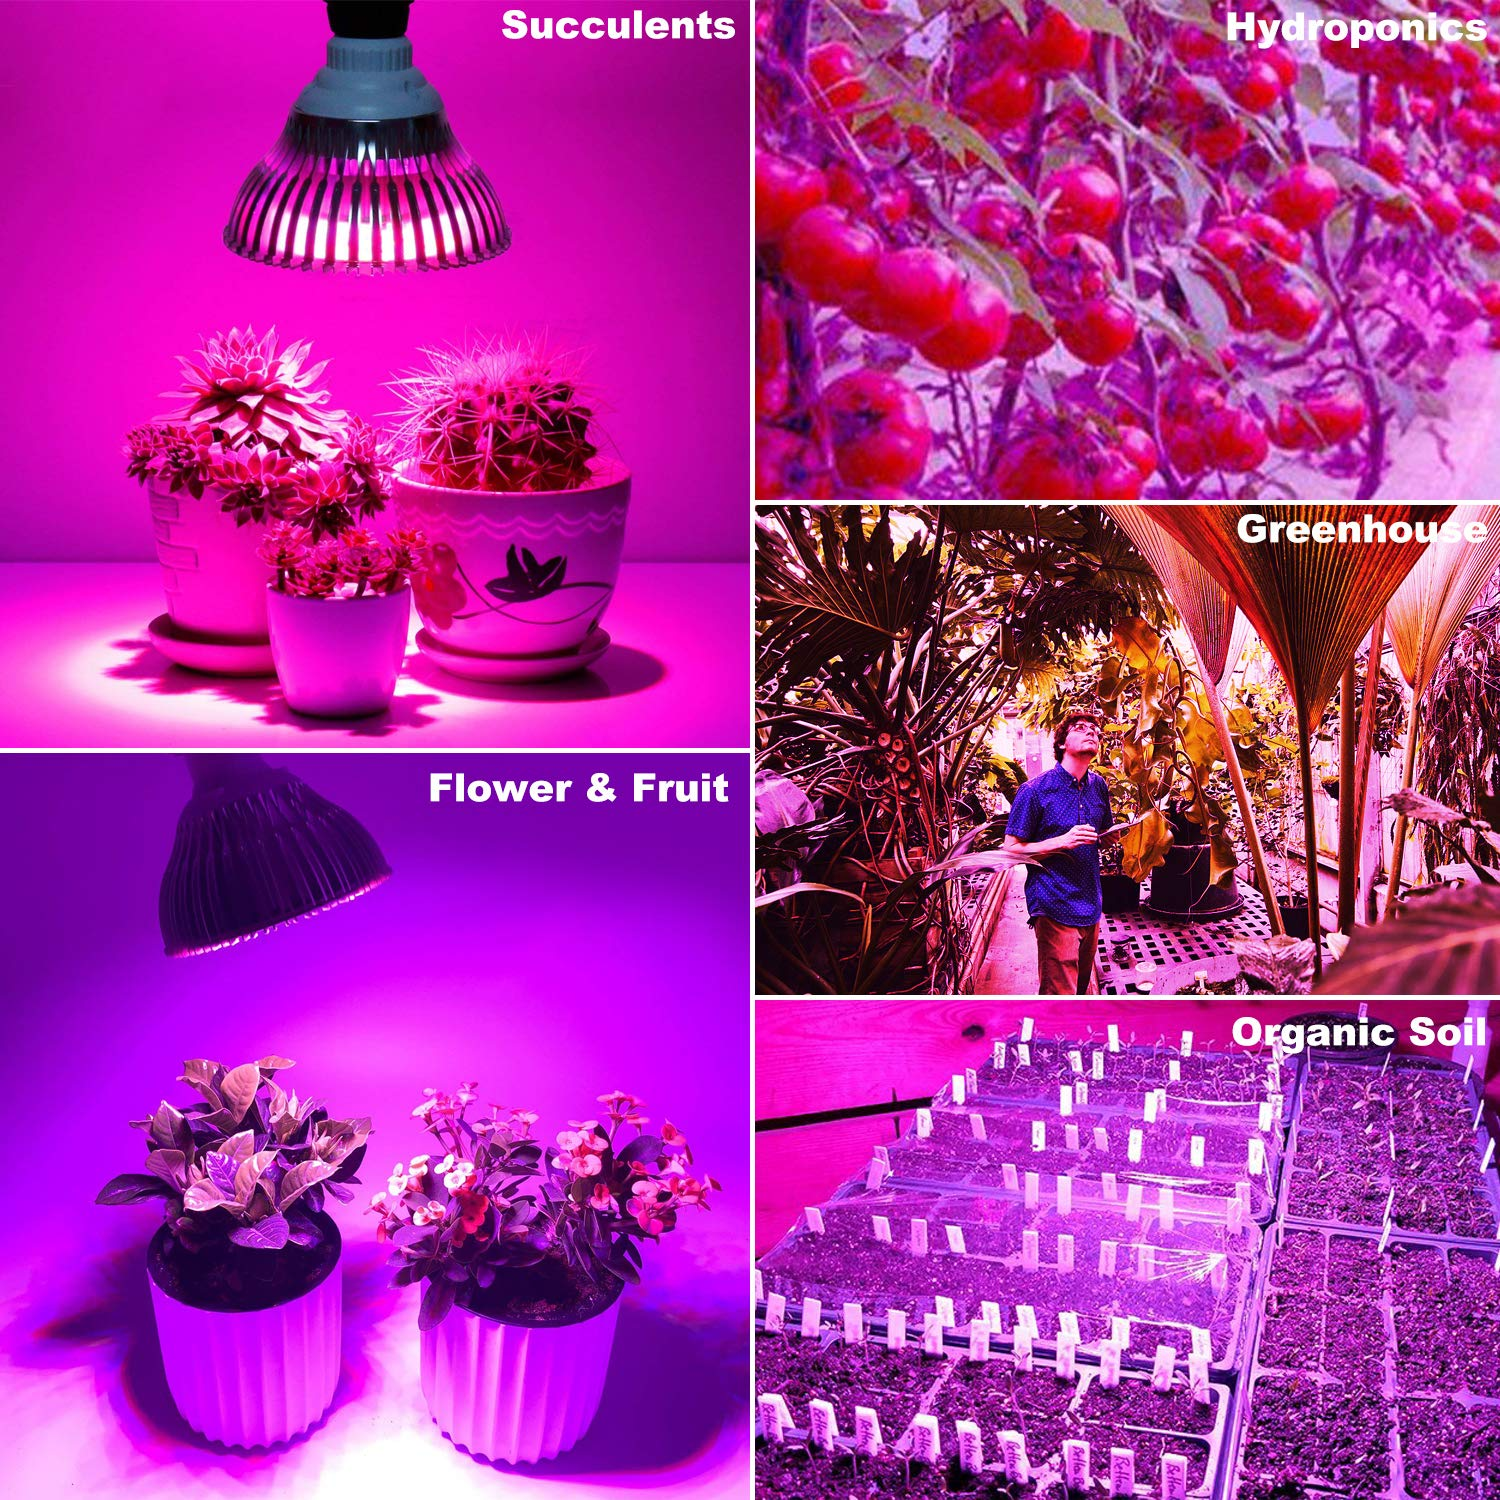 Led Plant Bulb for Flower Garden Greenhouse and Organic Soil 100W E26 LED Plant Grow Light Bulb Full Spectrum for Indoor Plants Hydroponics Vegetables and Seedlings Growing